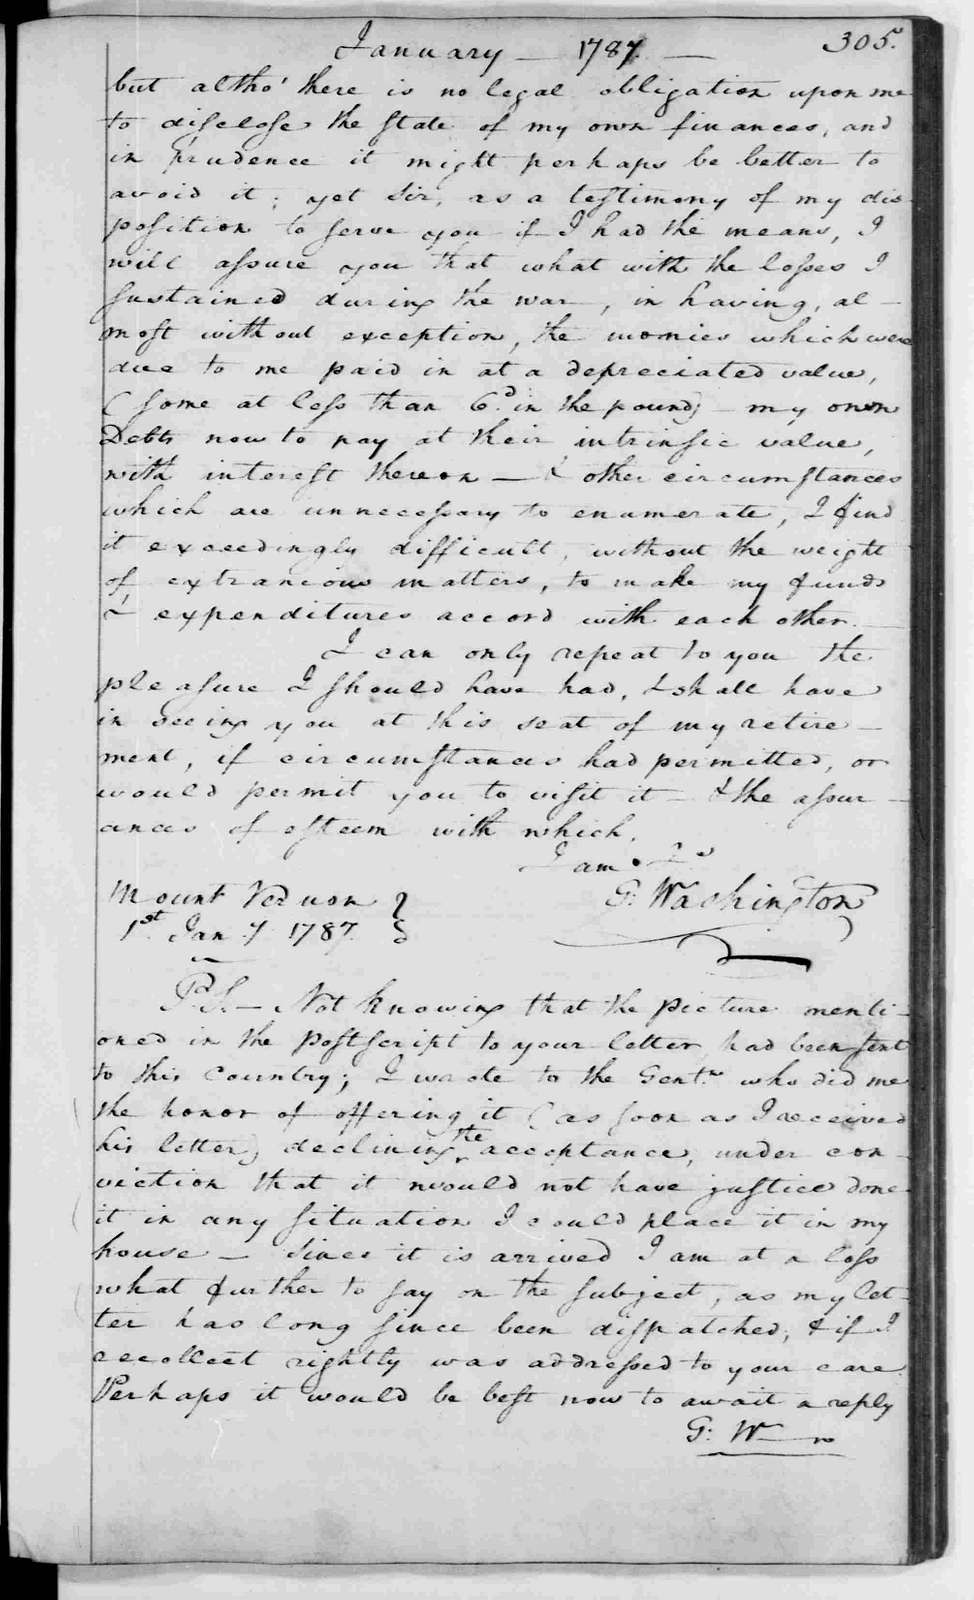 George Washington Papers, Series 2, Letterbooks 1754-1799: Letterbook 13, March 5, 1786 - Jan. 23, 1787